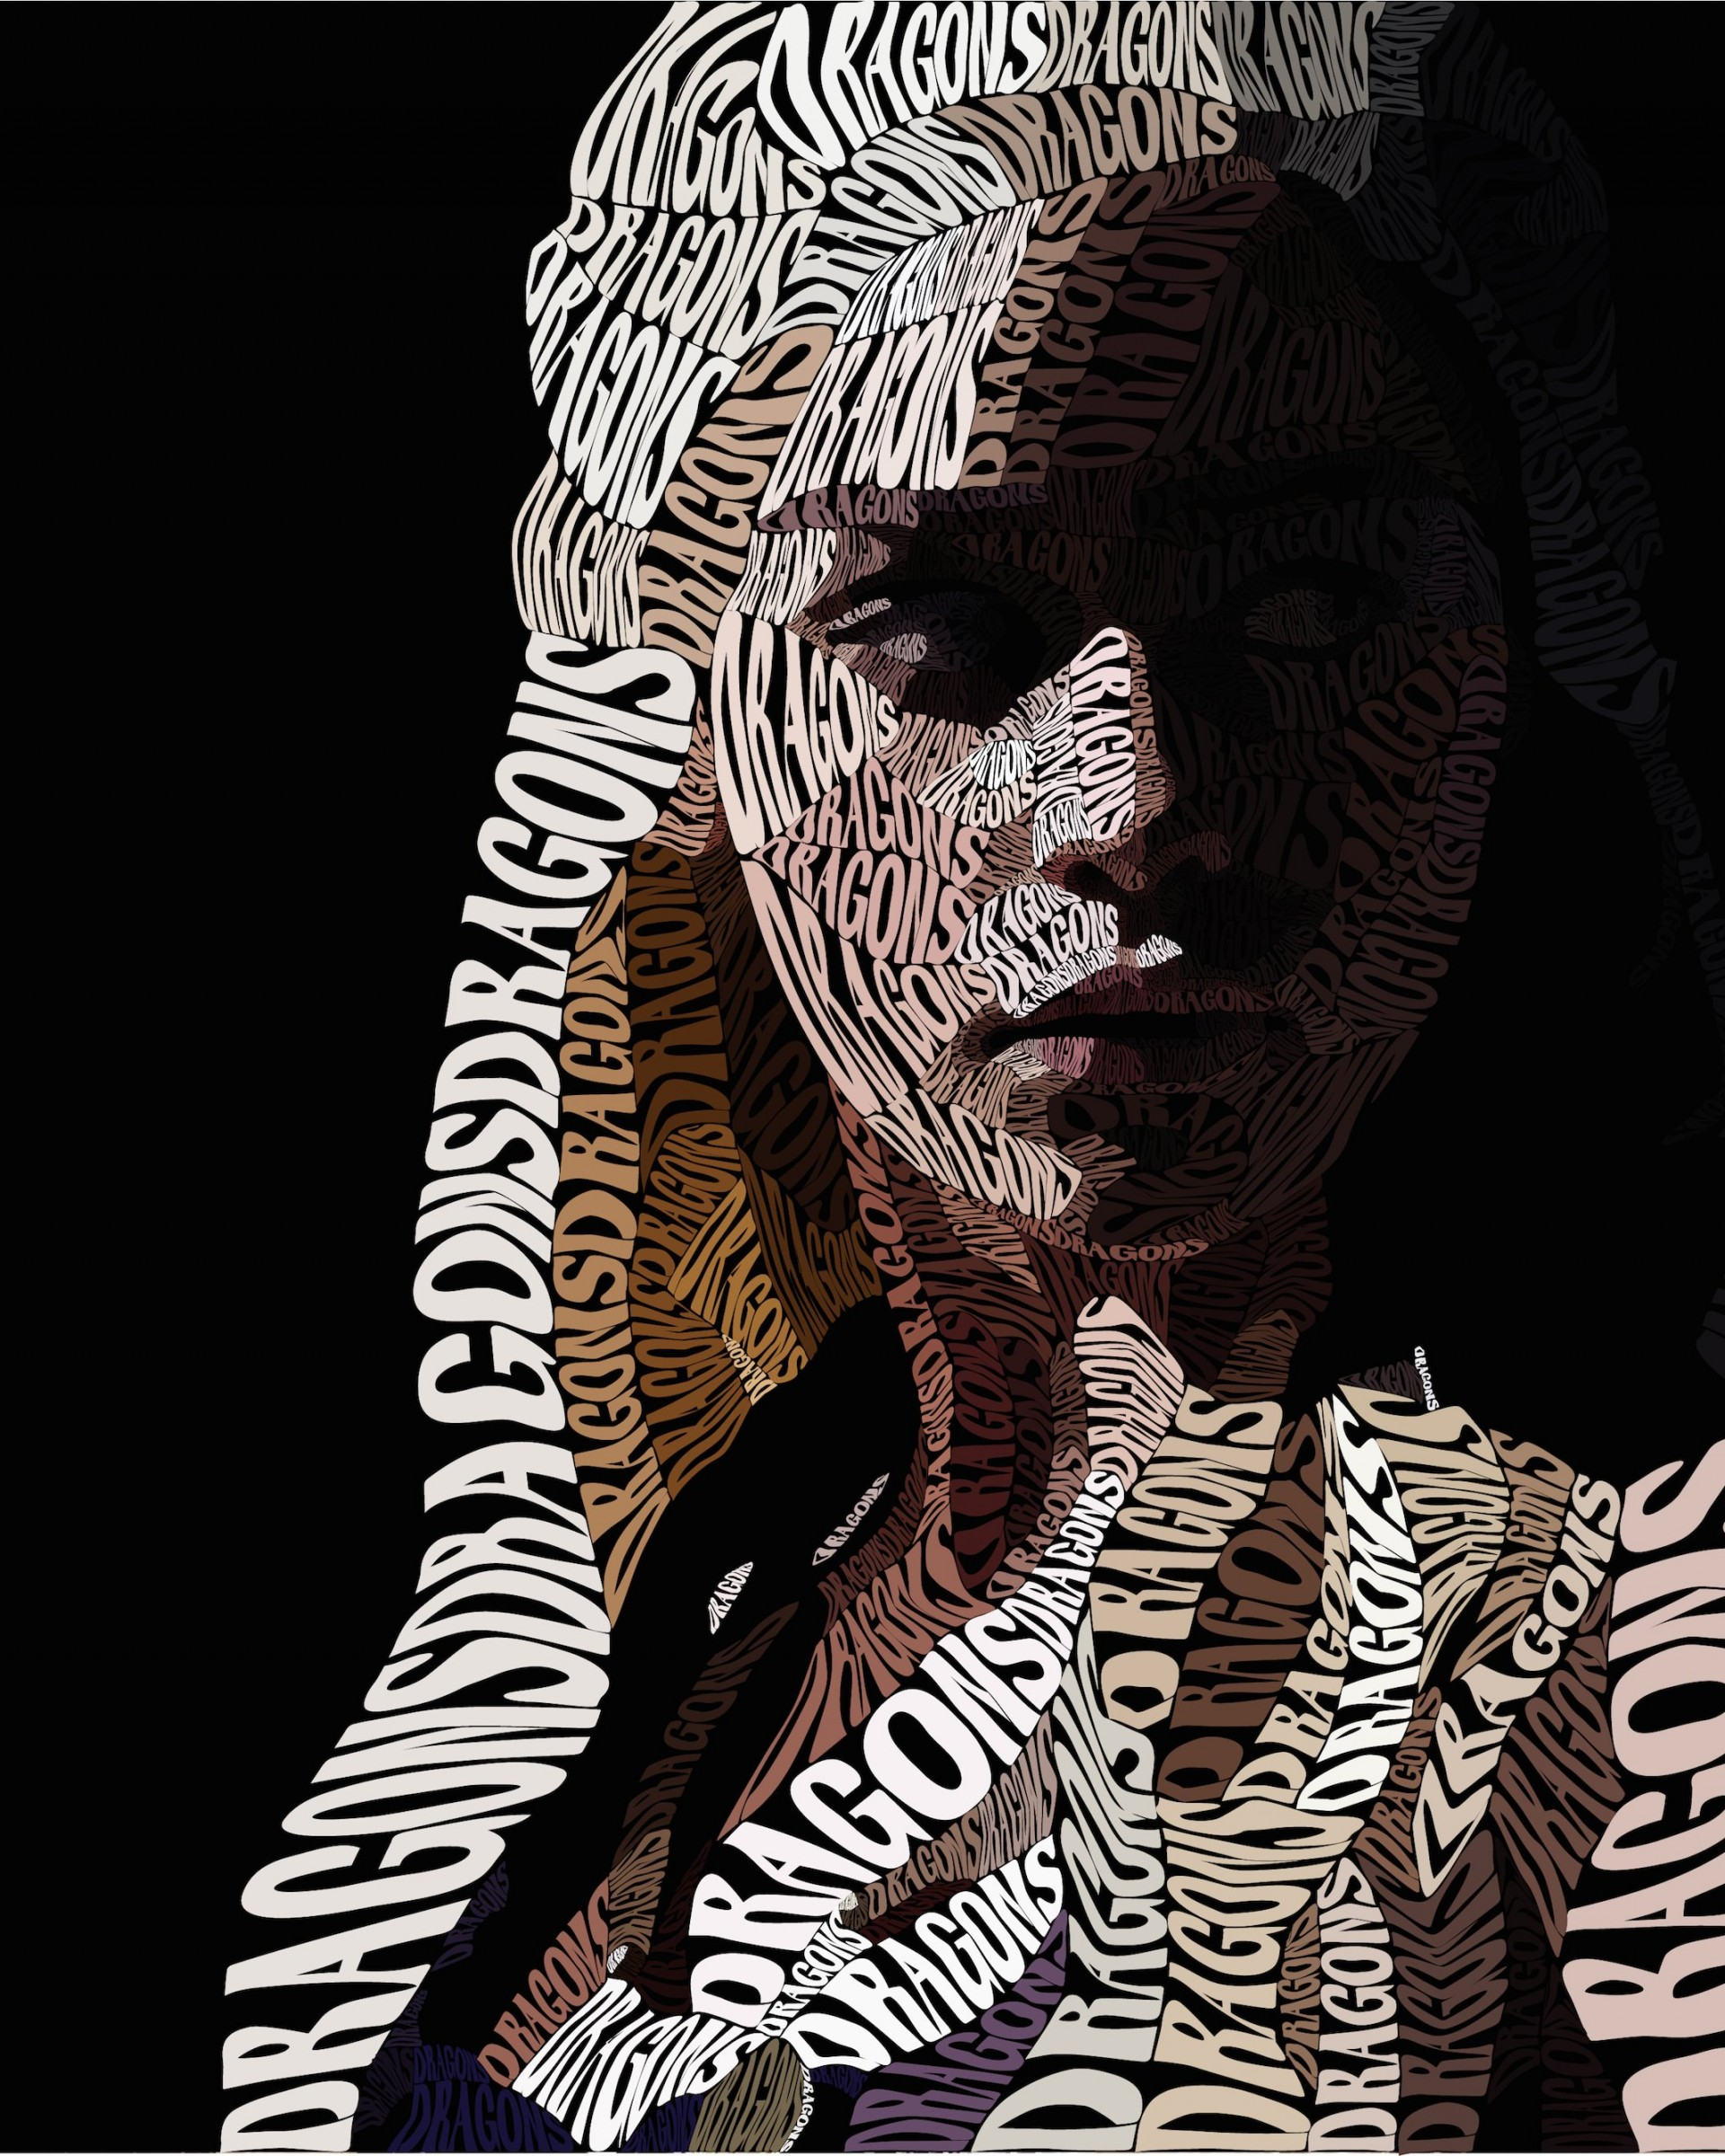 Khaleesi Typography Wallpaper for Google Nexus 7